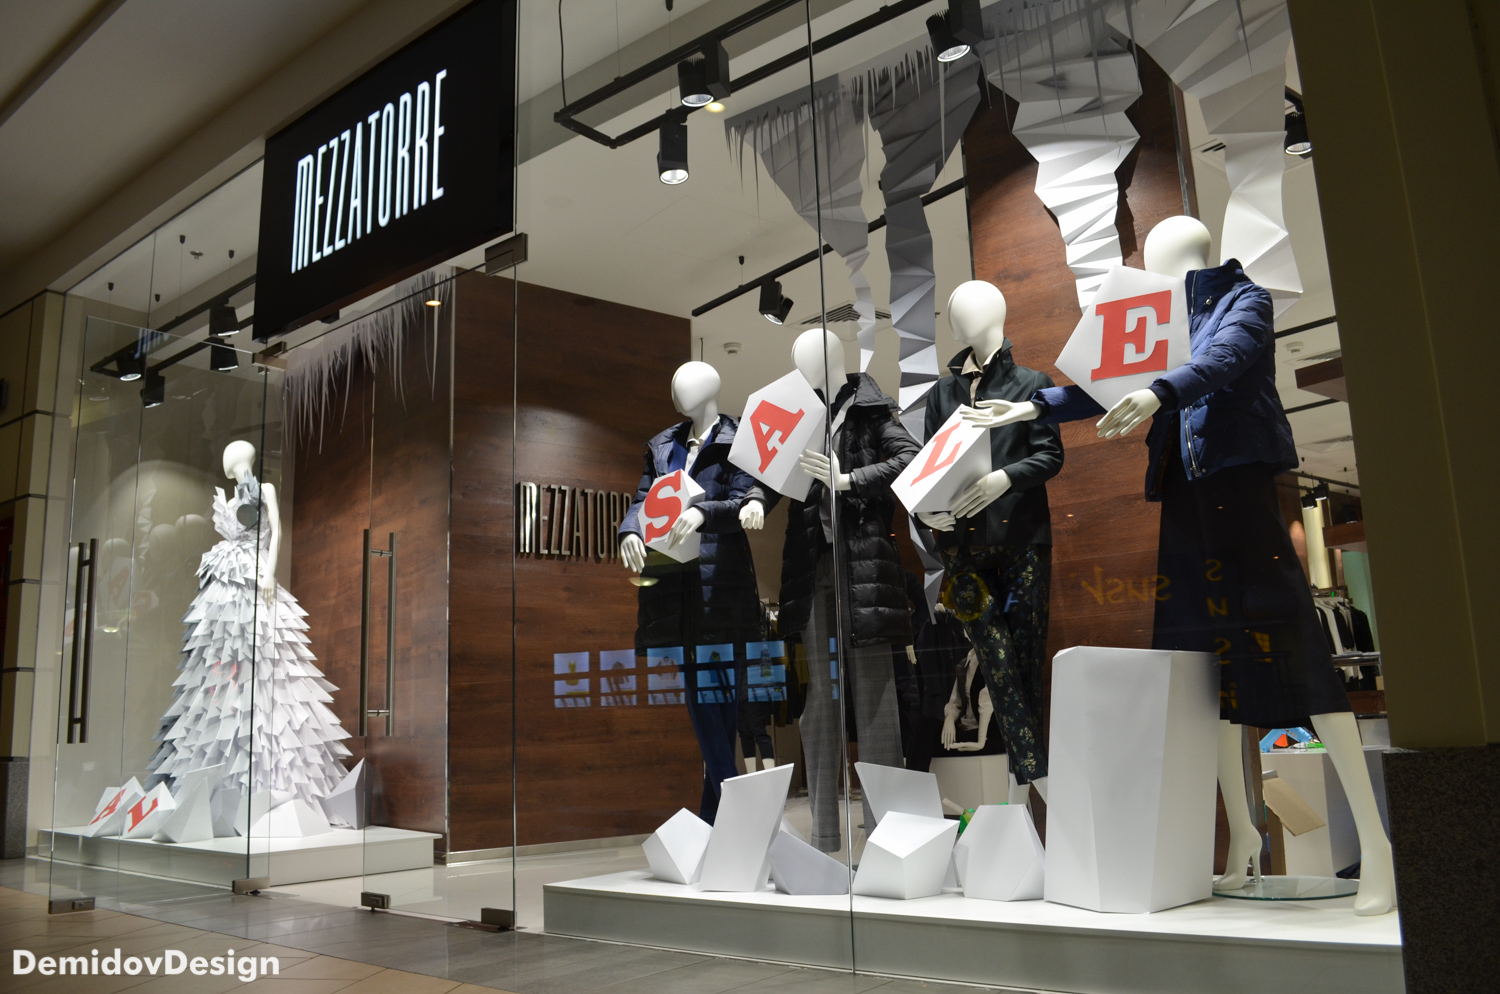 Mezzatorre is picking some white geometrics shapes for iced snow, thick clothes and sales message